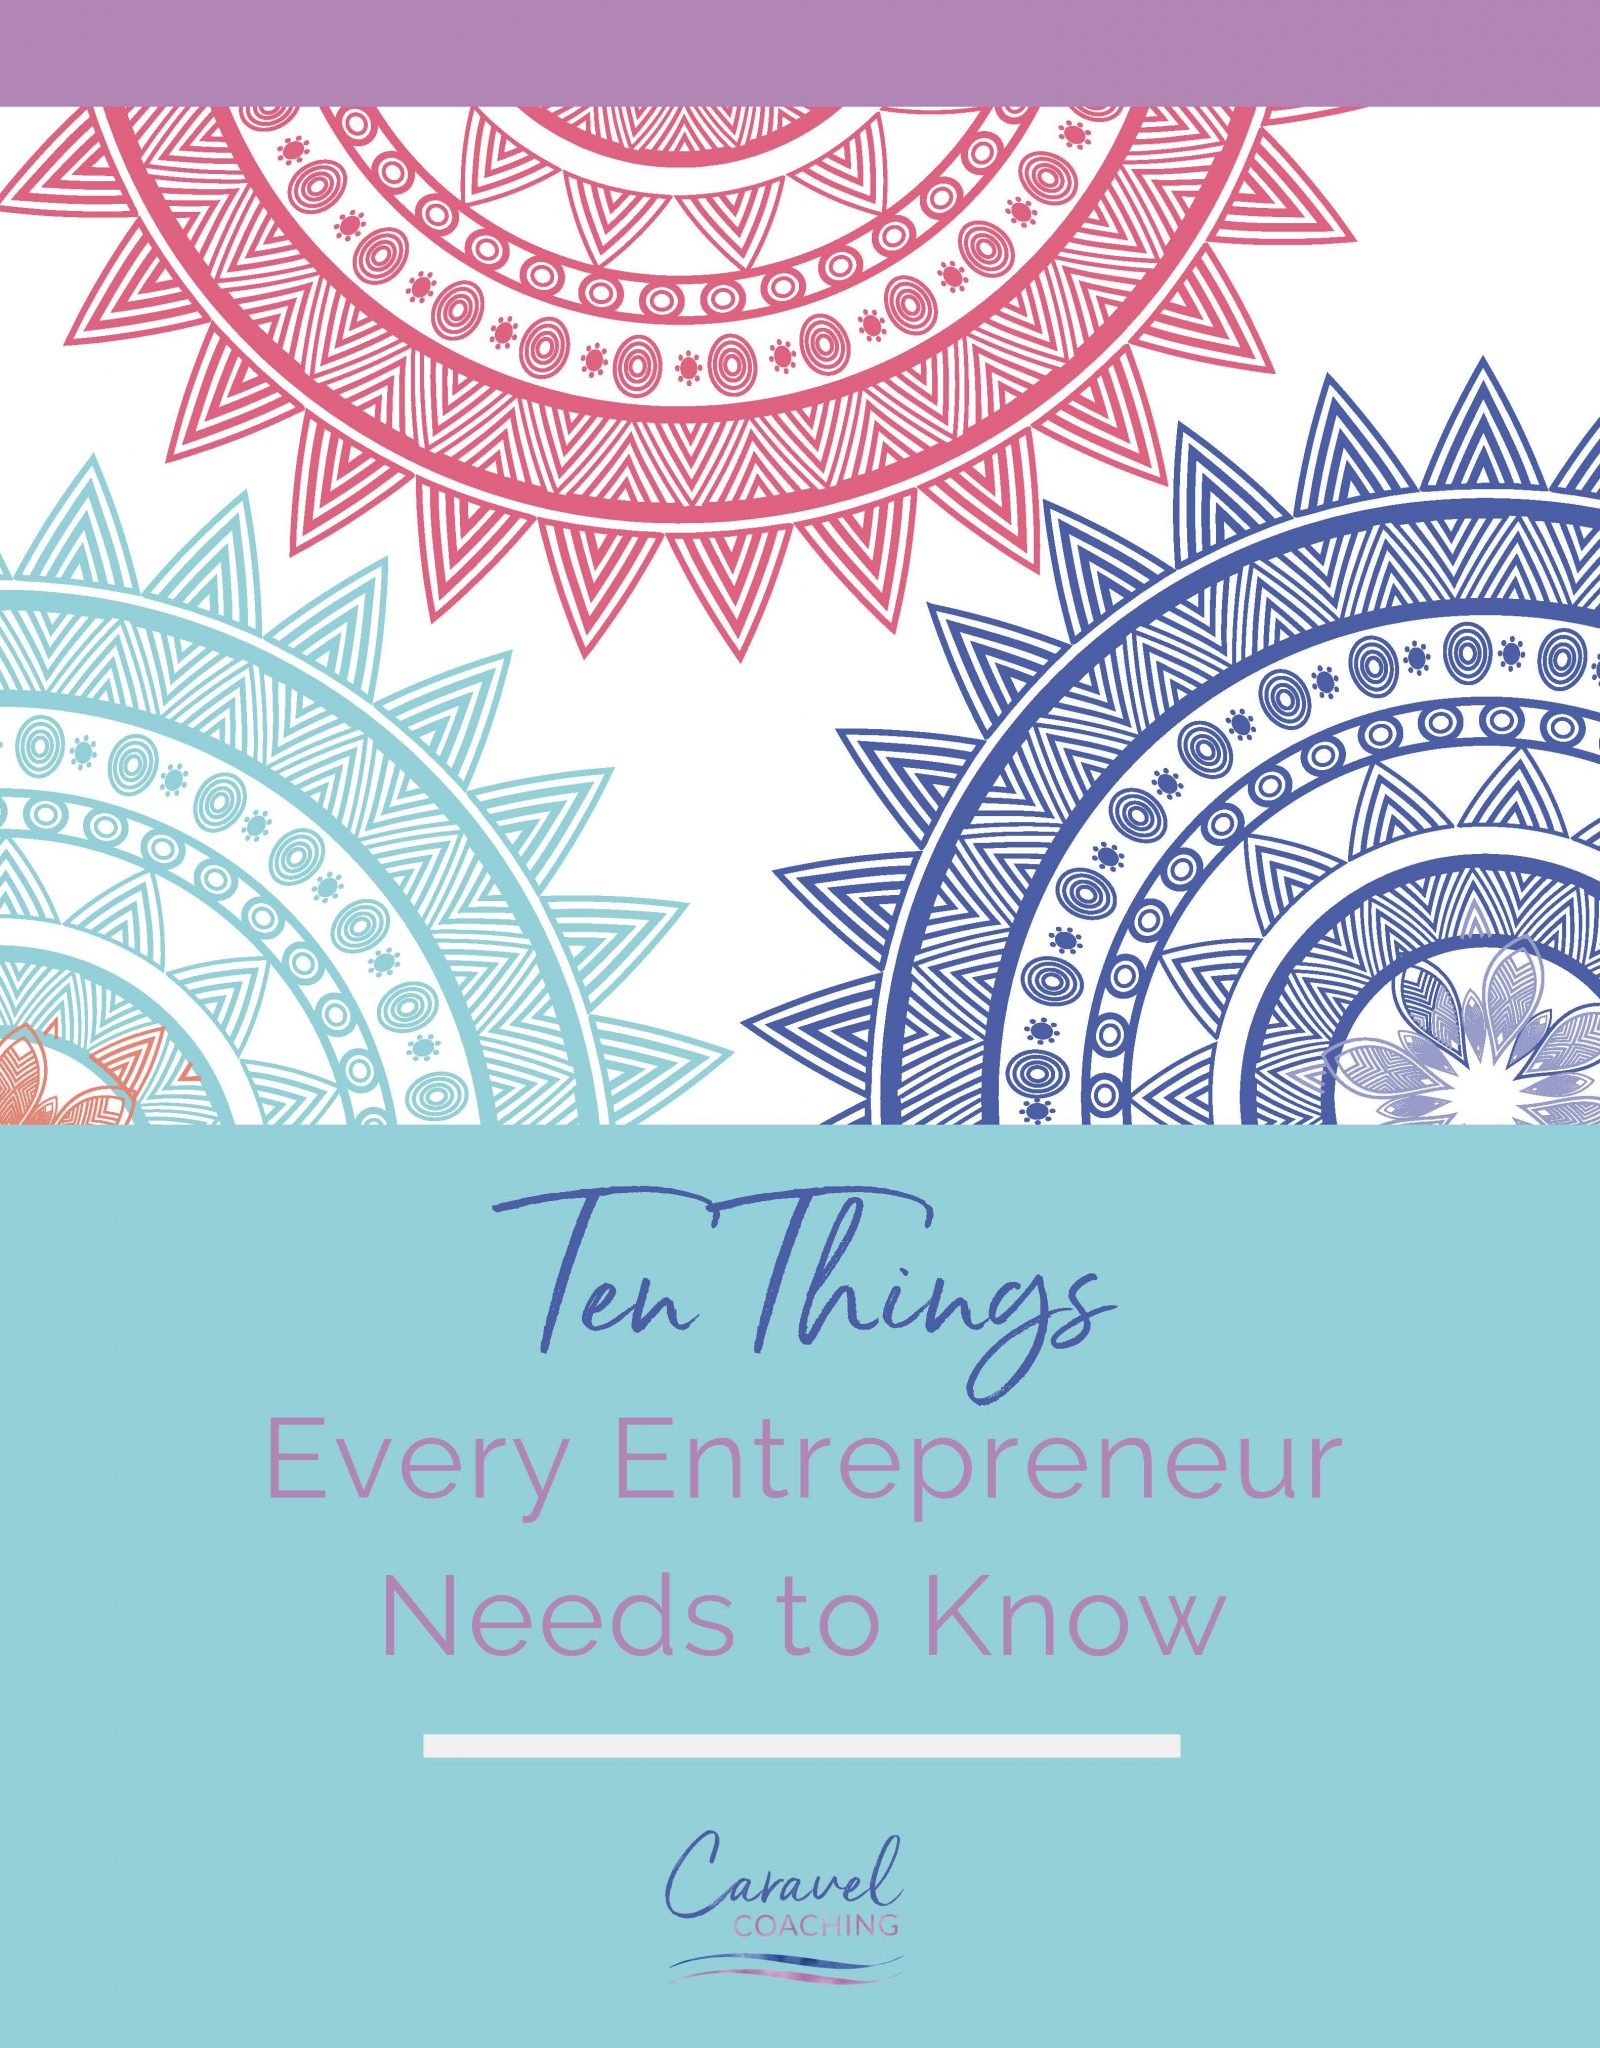 Ten Things Every Entrepreneur Needs to Know - Caravel Coaching